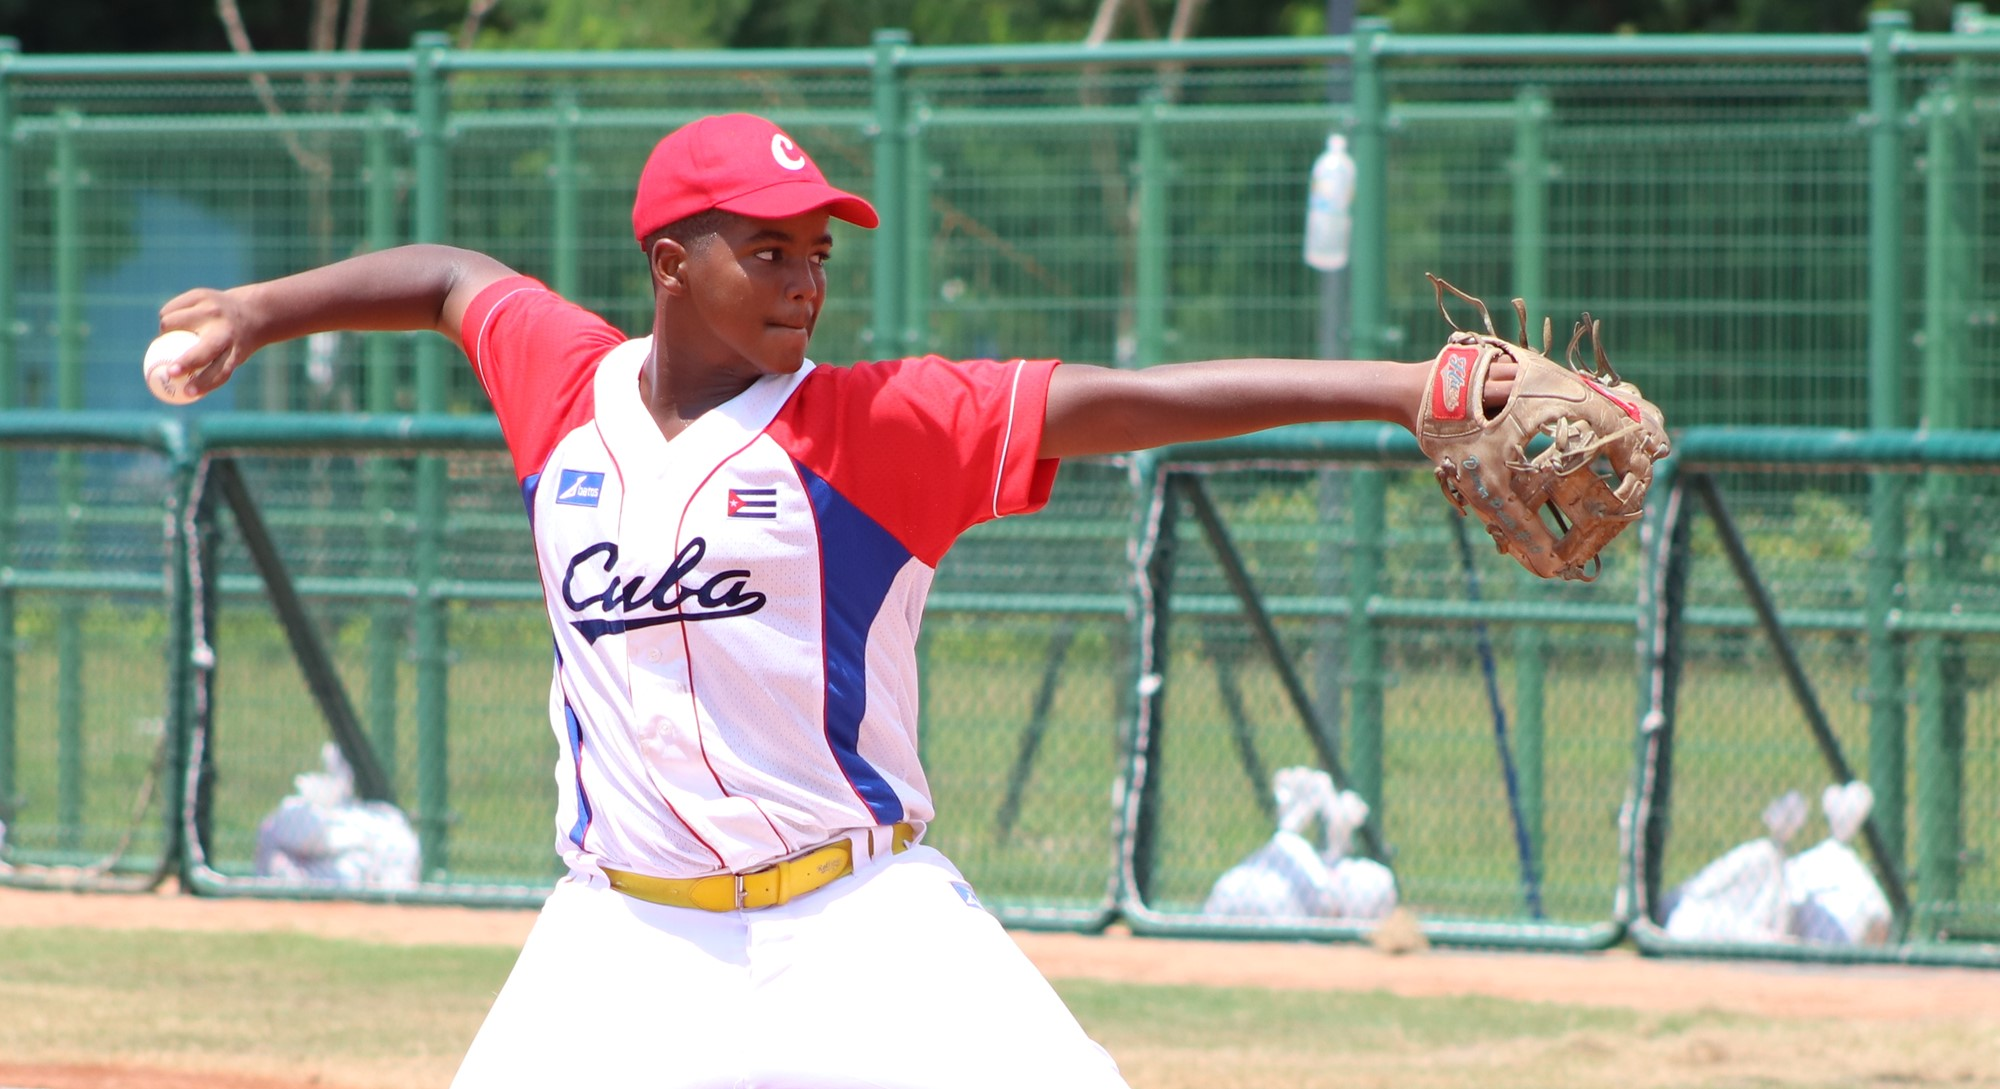 Cuba's pitcher took control and didn't allow another run